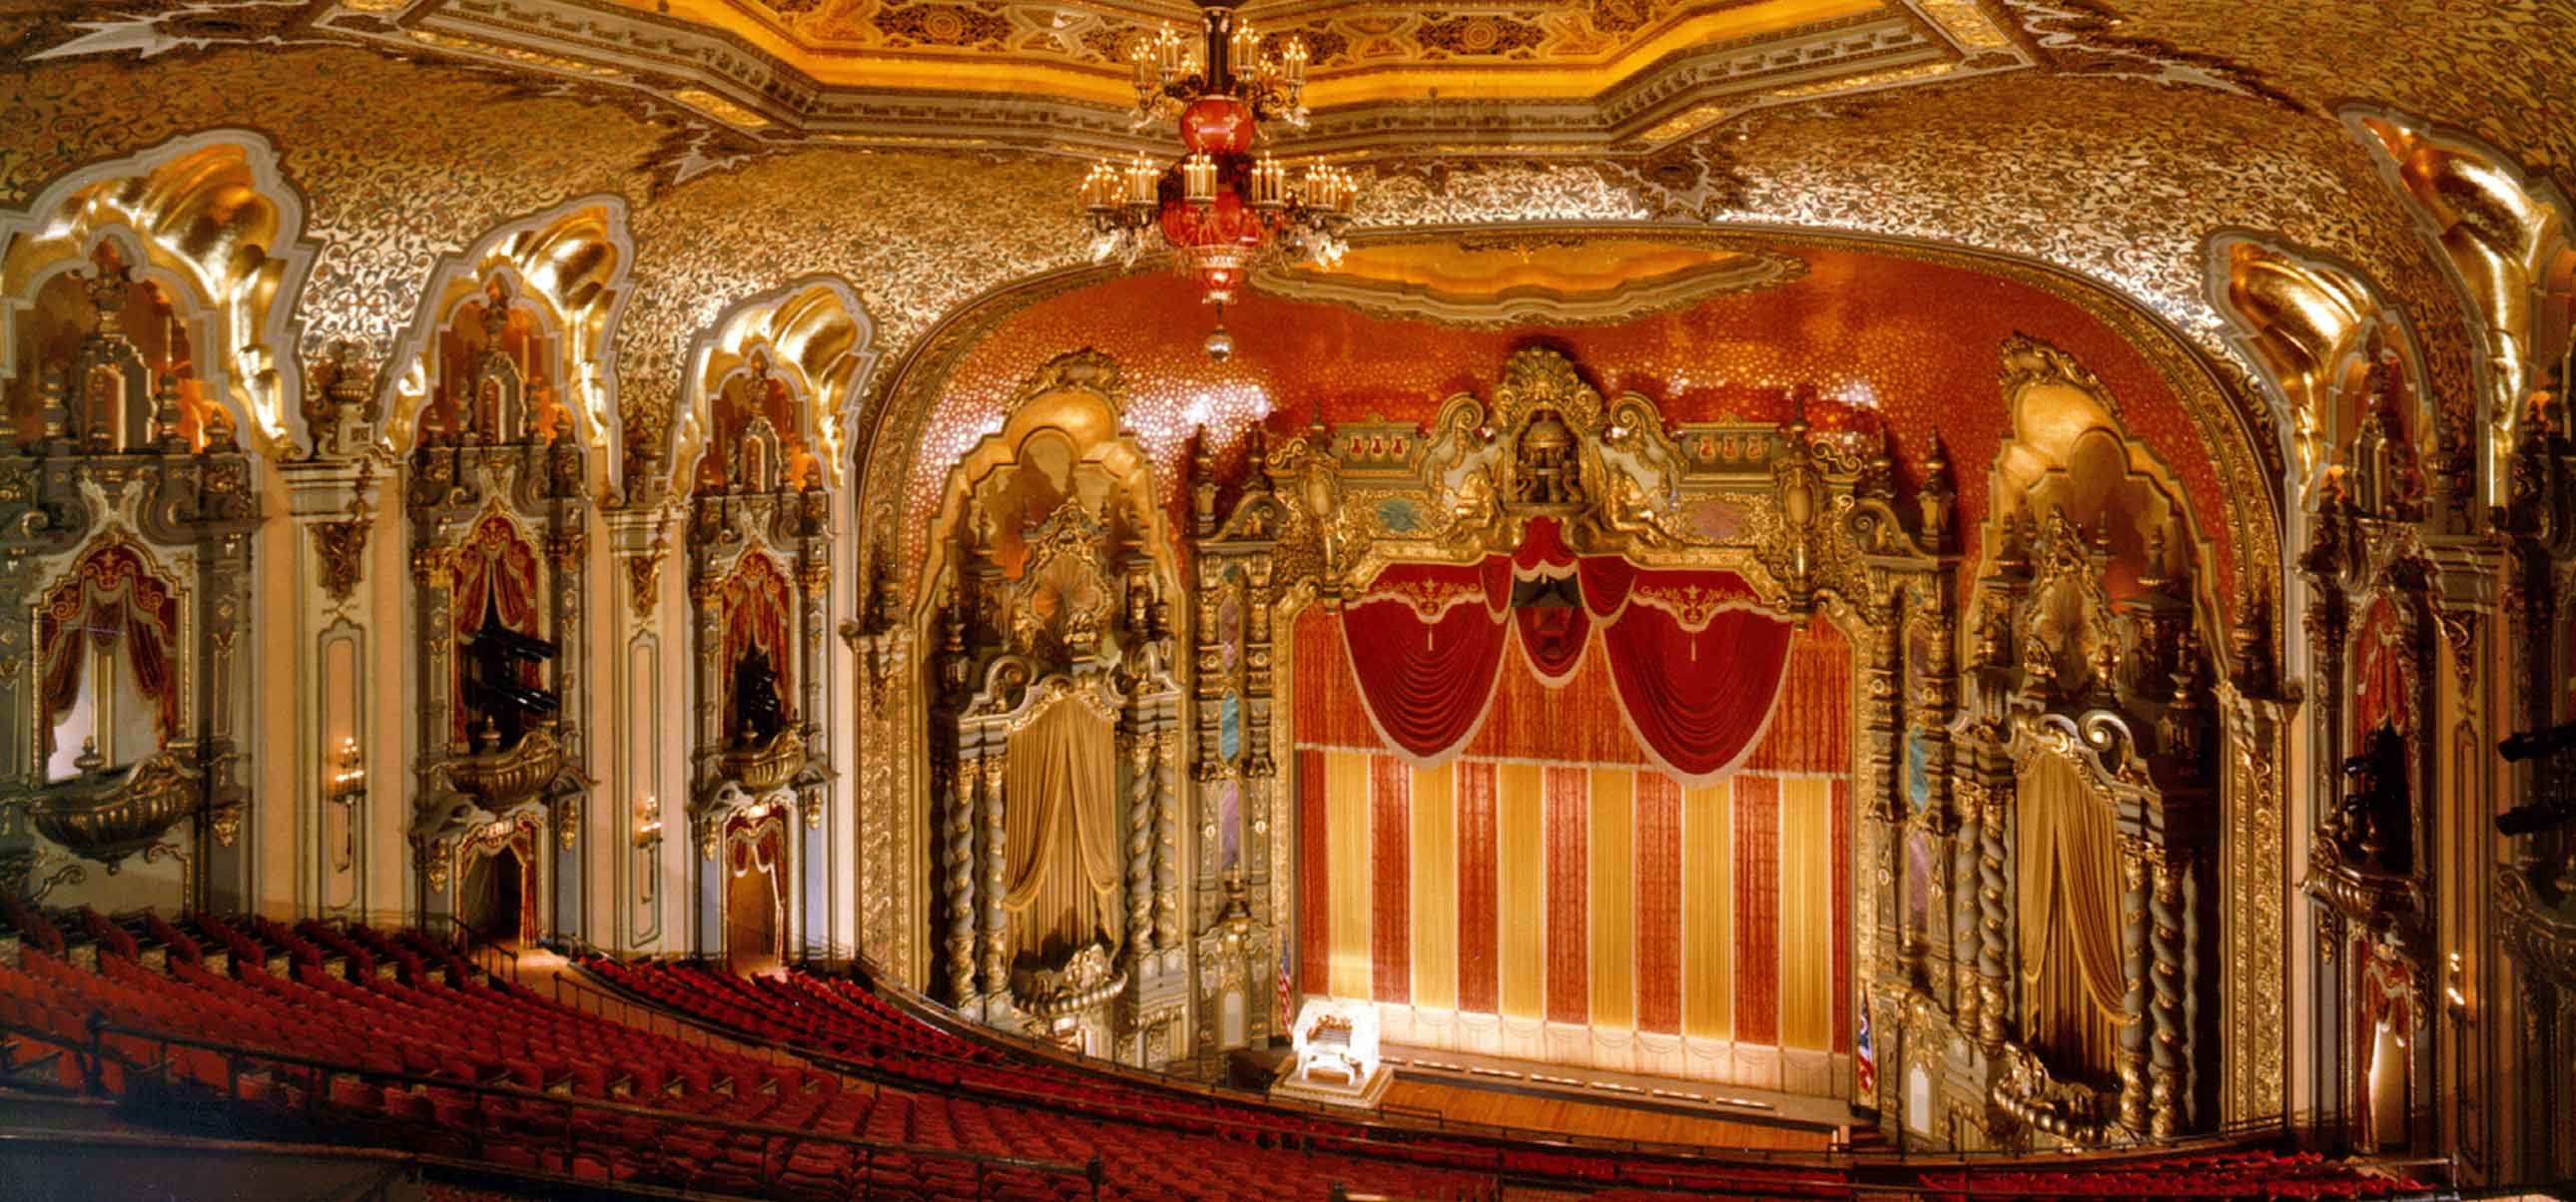 boston opera house balcony Ohio Theatre Columbus Association For The Performing Arts